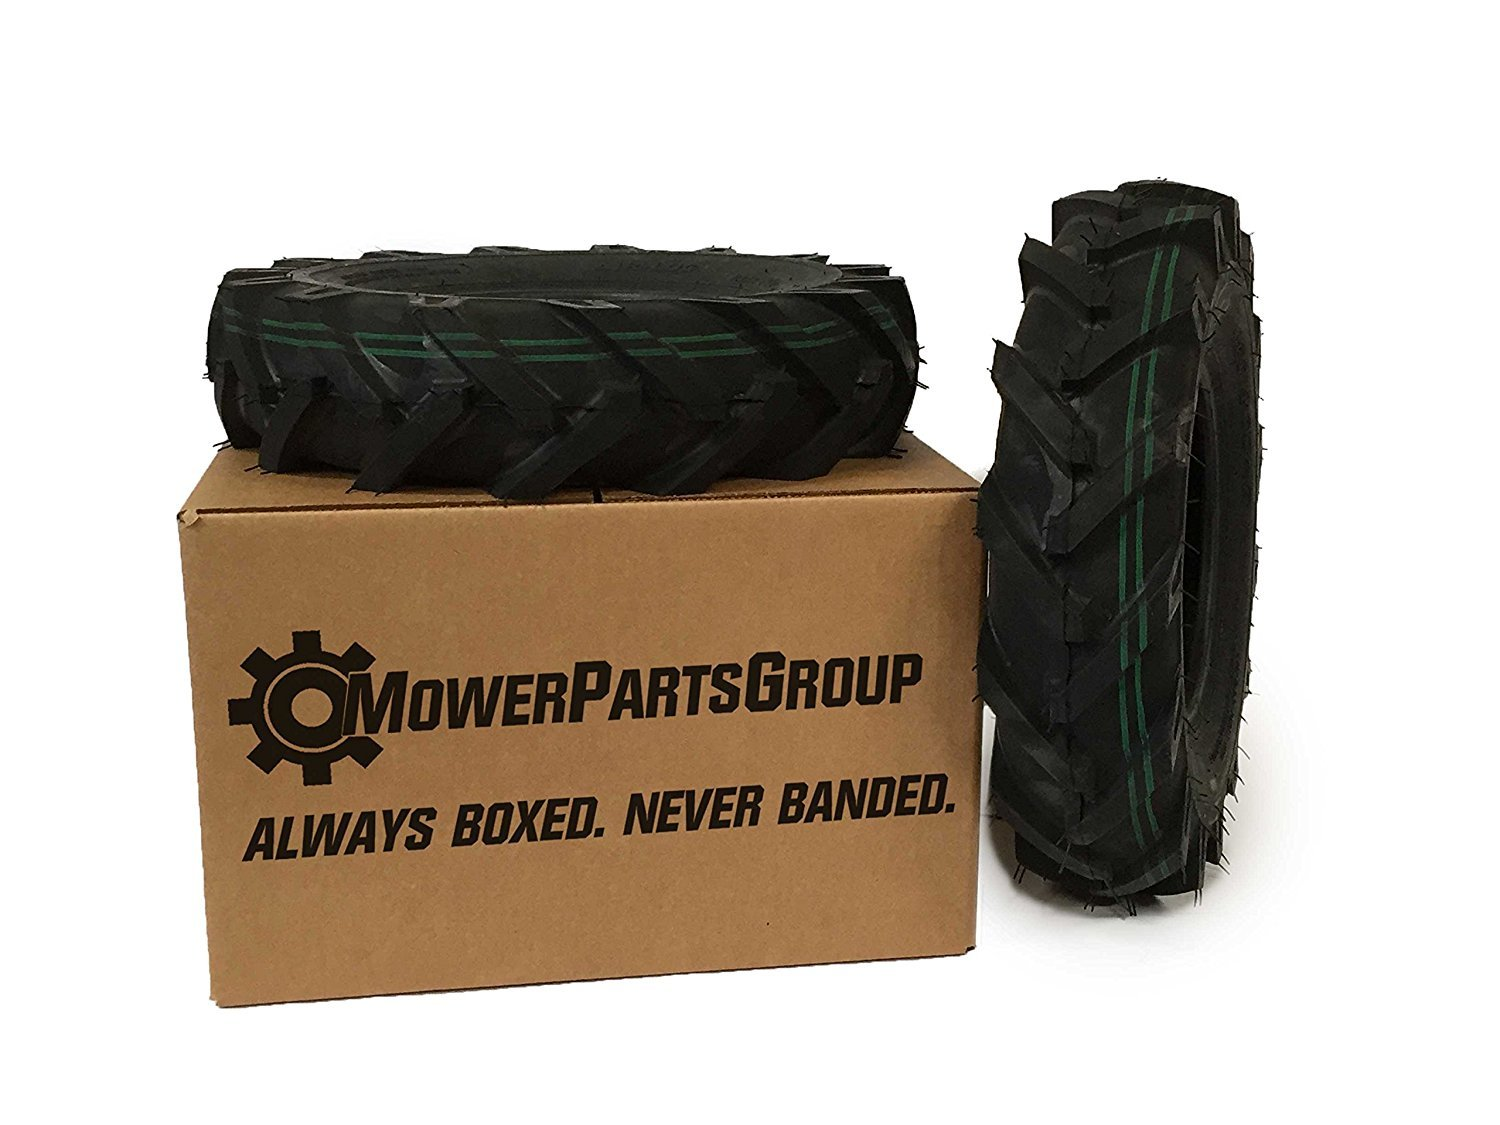 Amazon.com : MowerPartsGroup (2) Tiller Tires with Tubes 4.80x4x8 ...